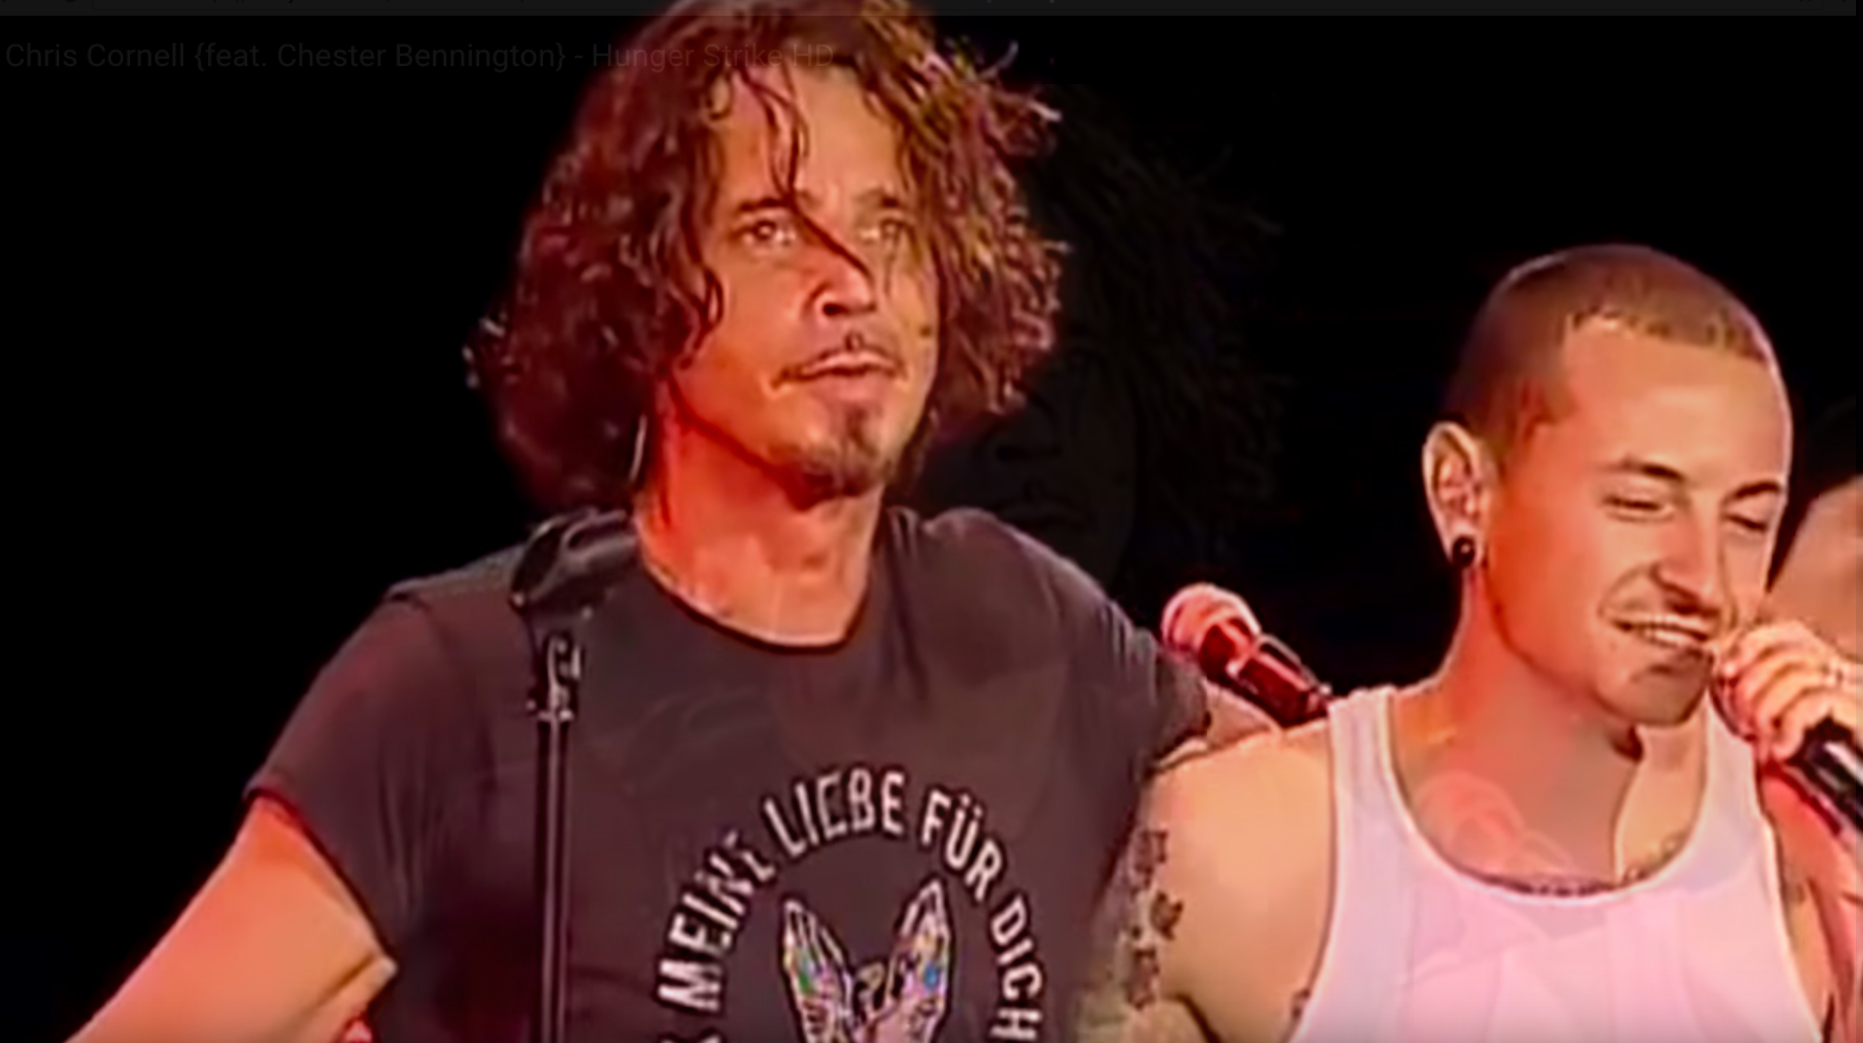 Chris Cornell and Chester Bennington live